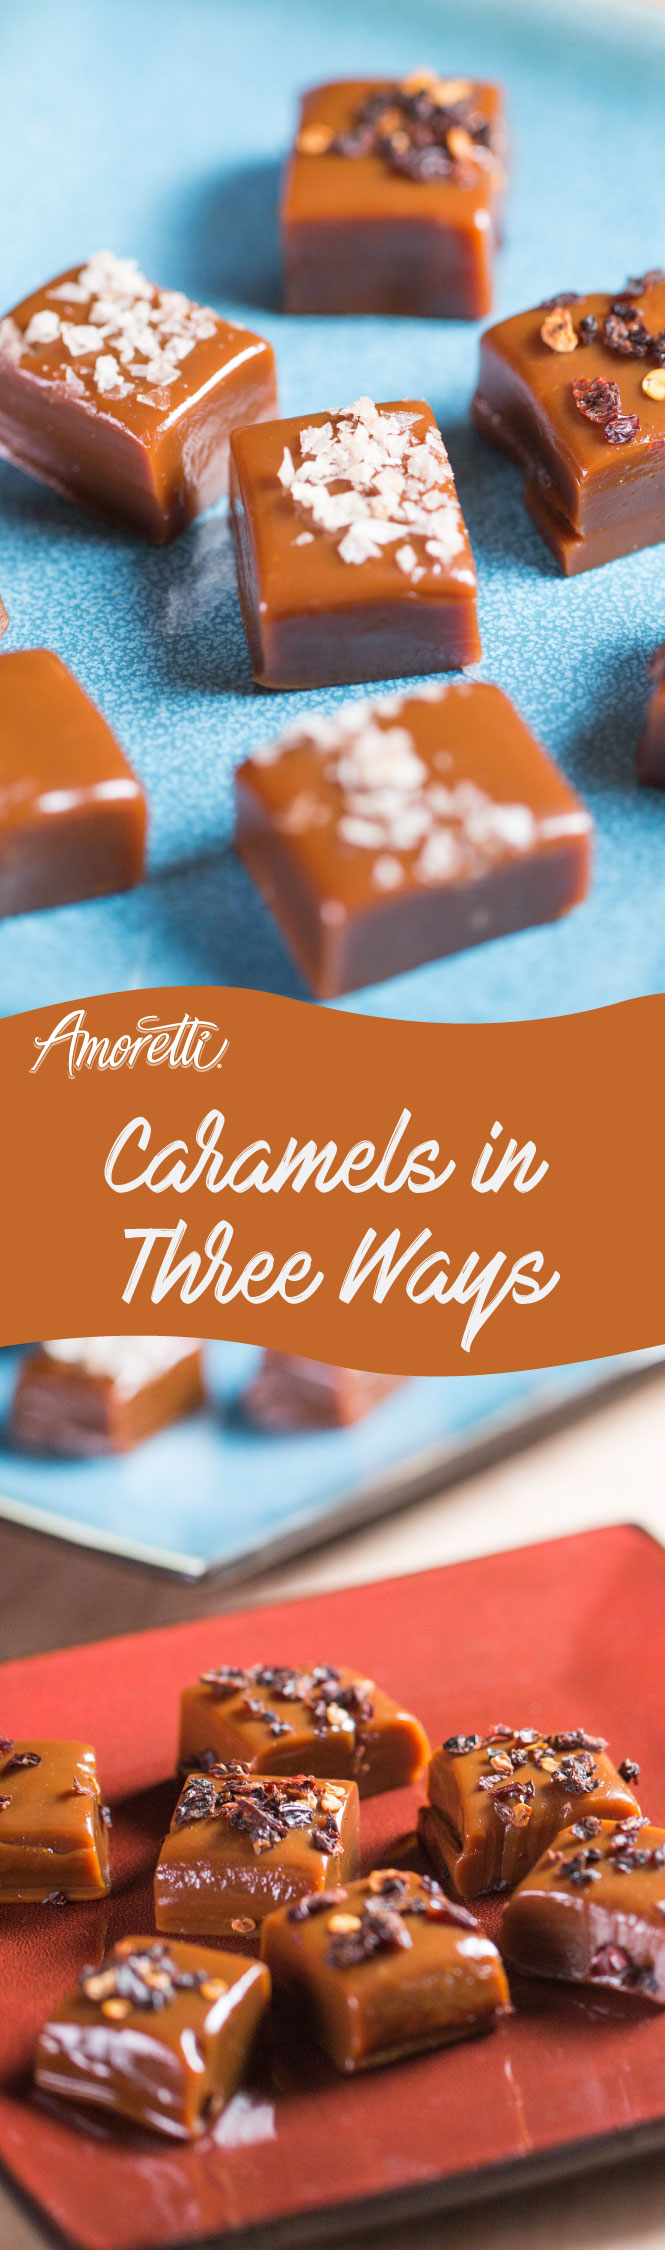 Classic, sea salt, or spicy caramels; you choose!